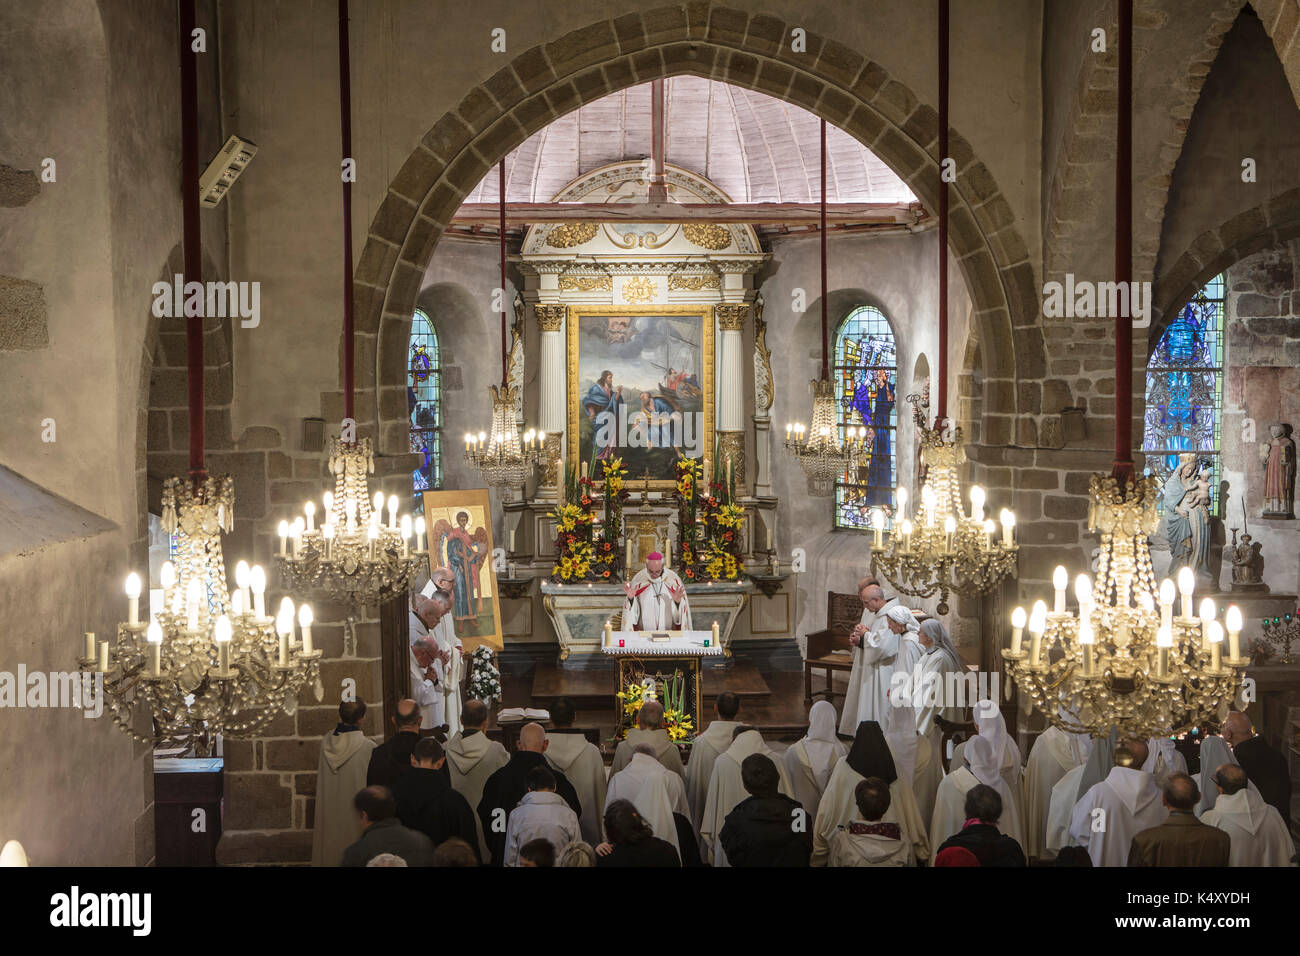 Mont Saint-Michel (Saint Michael's Mount), on 2016/10/16: revels for the 1050th anniversary of the monastic presence on Mont Saint-Michel. It was in 9 - Stock Image